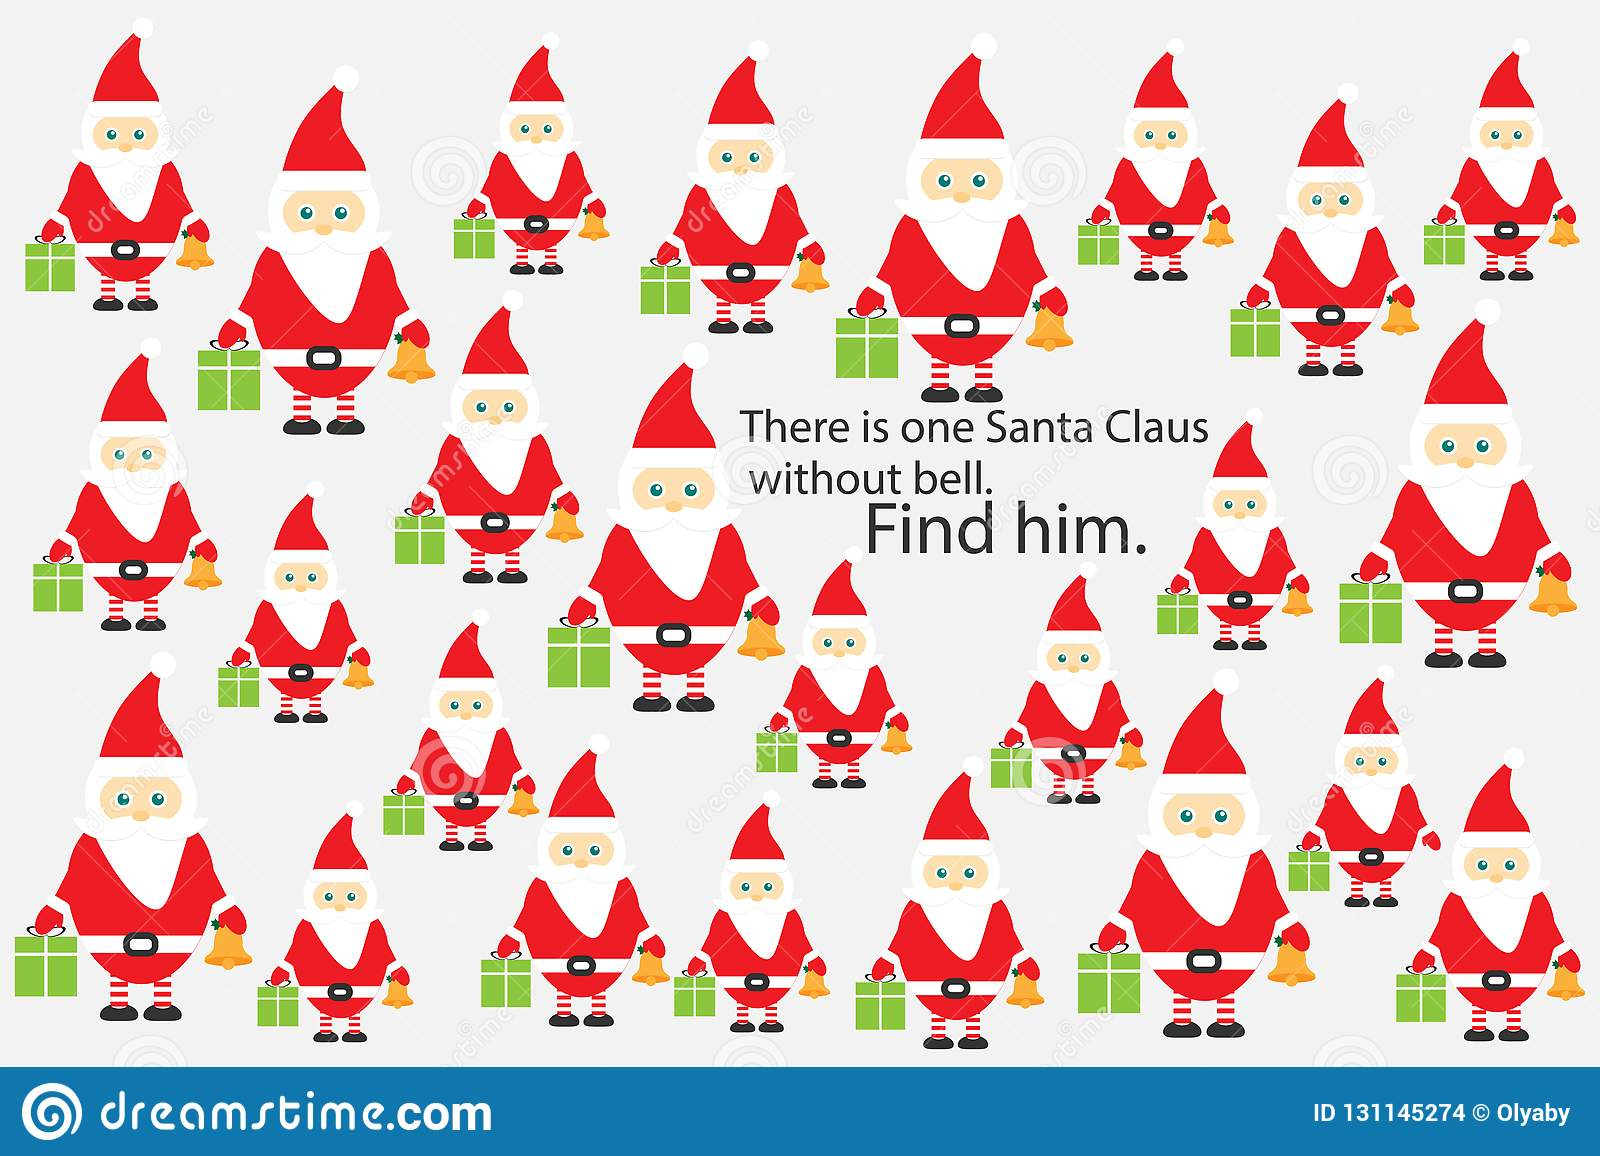 Find Santa Claus Without Bell Christmas Fun Education